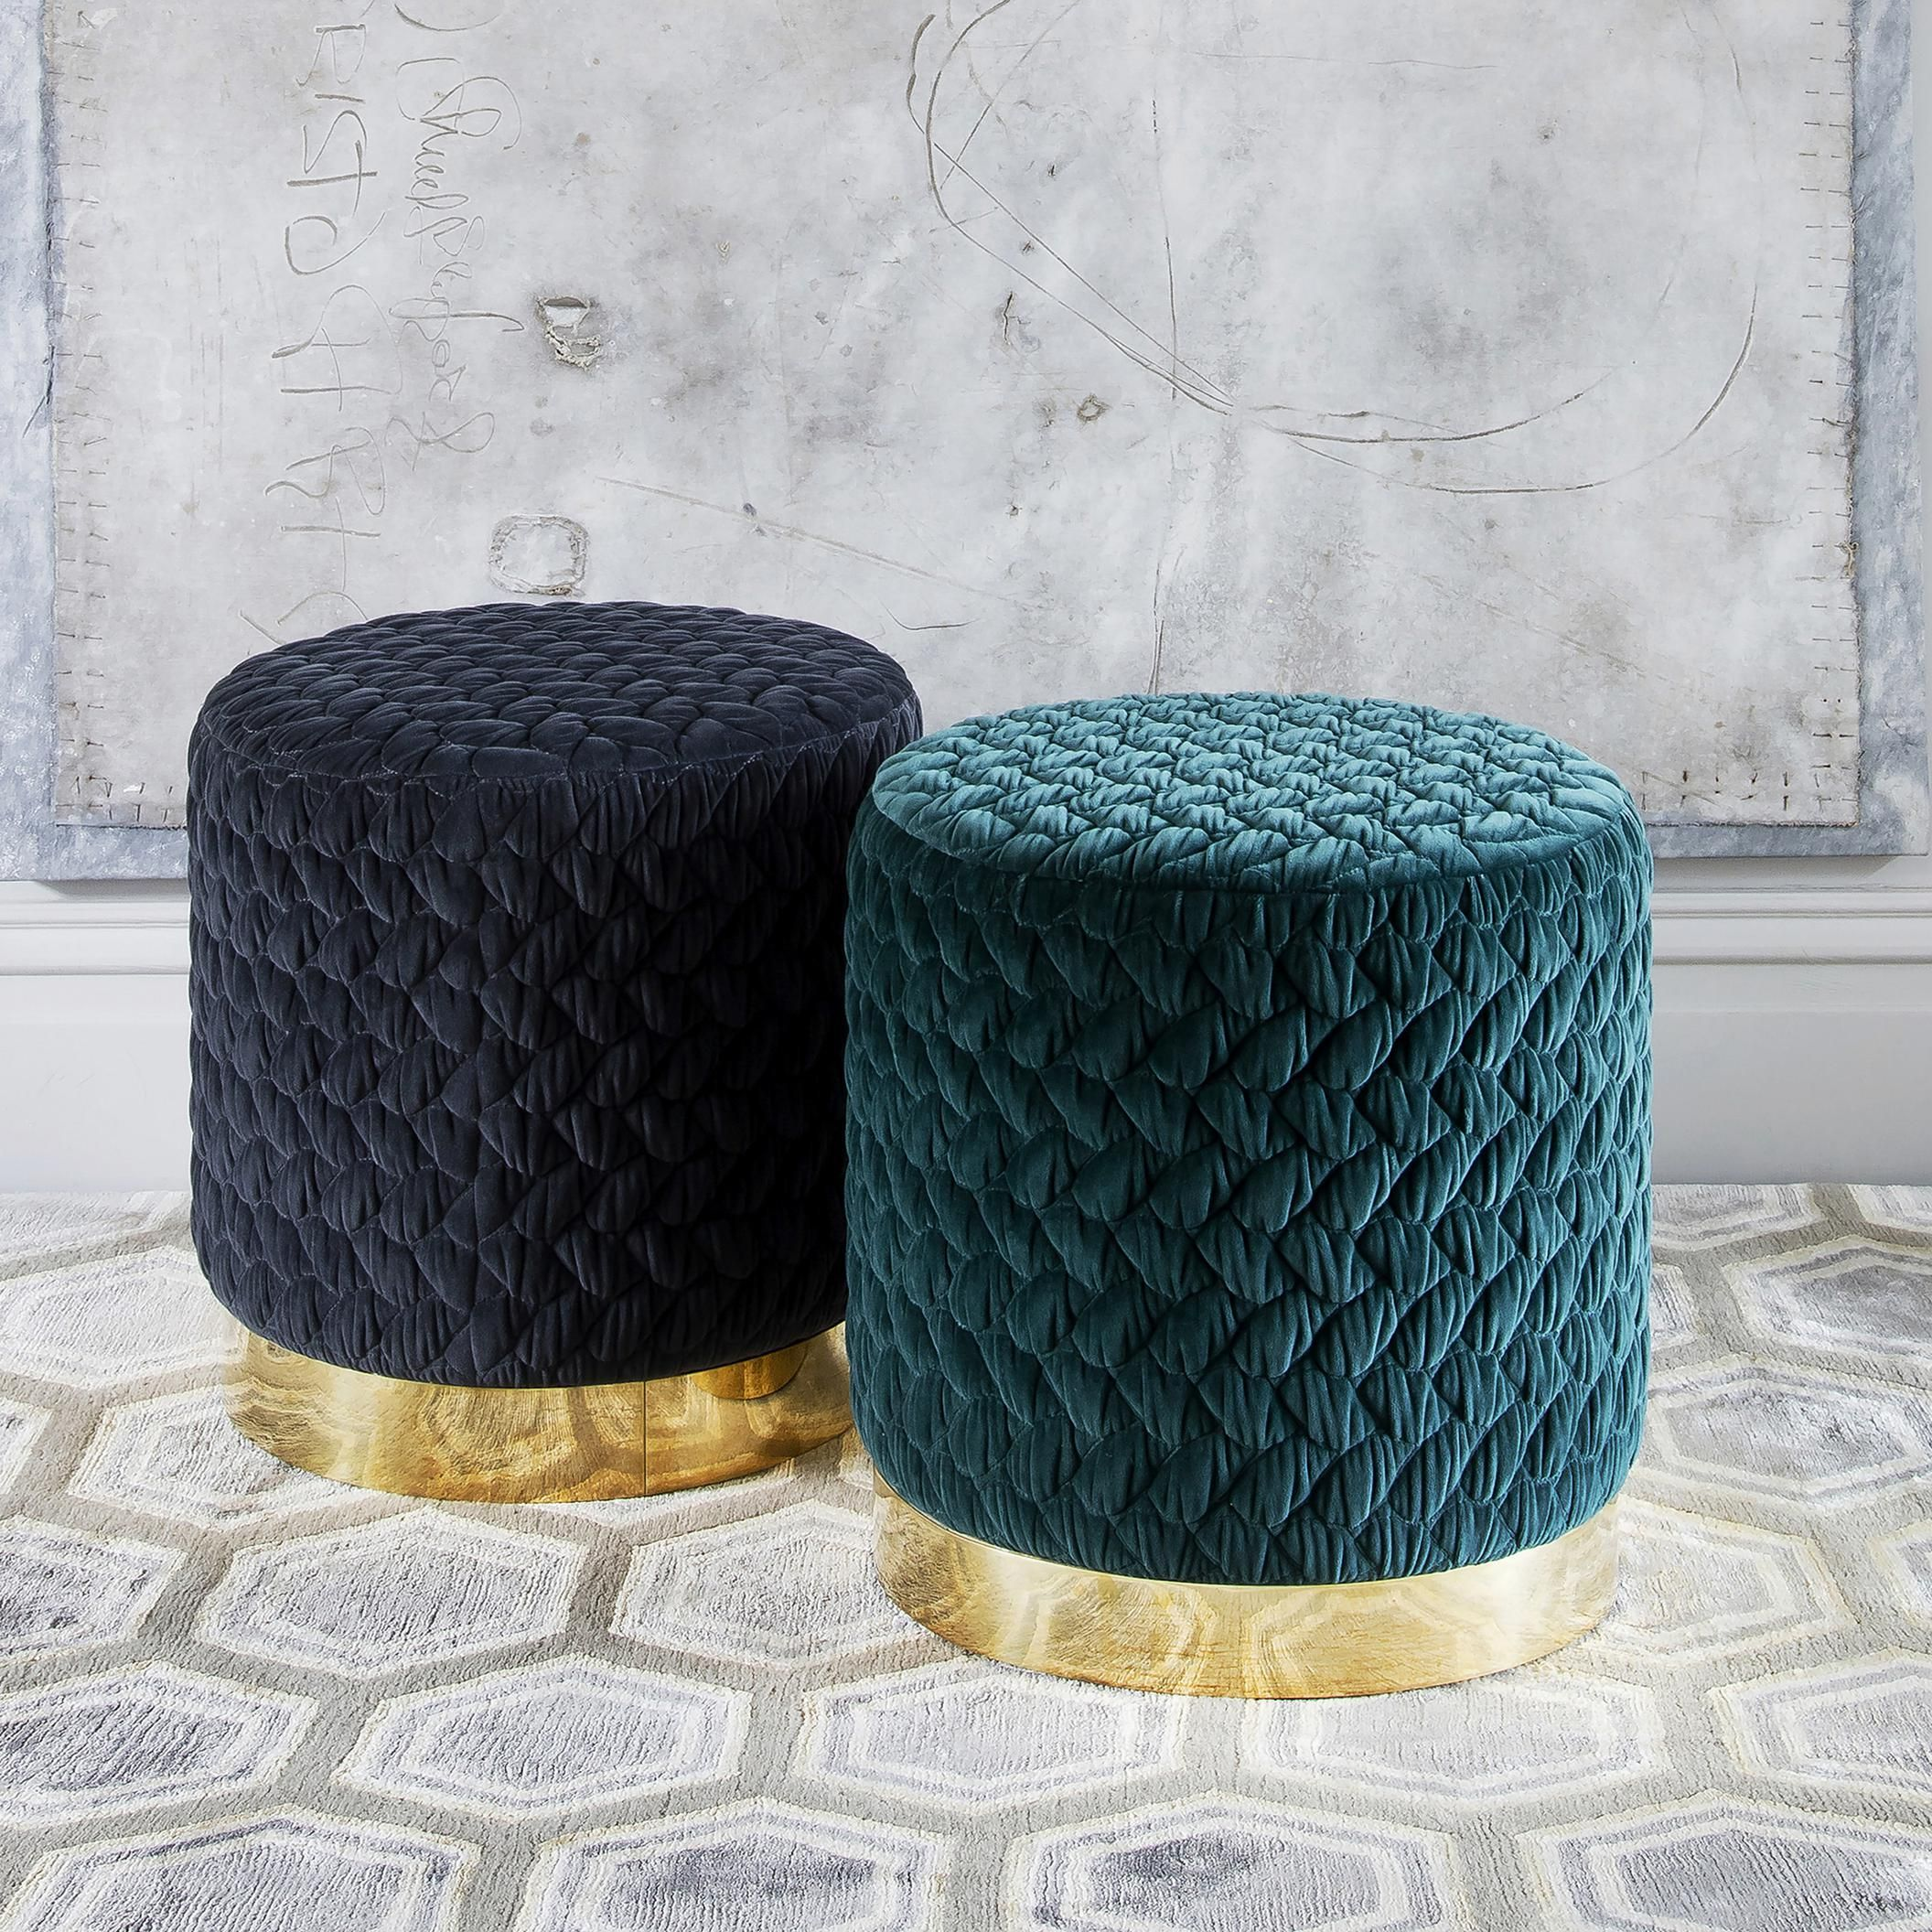 online retailer 27540 2cd88 The Diana Pouf Casa botelho | velvet spaces in 2019 | Luxury ...